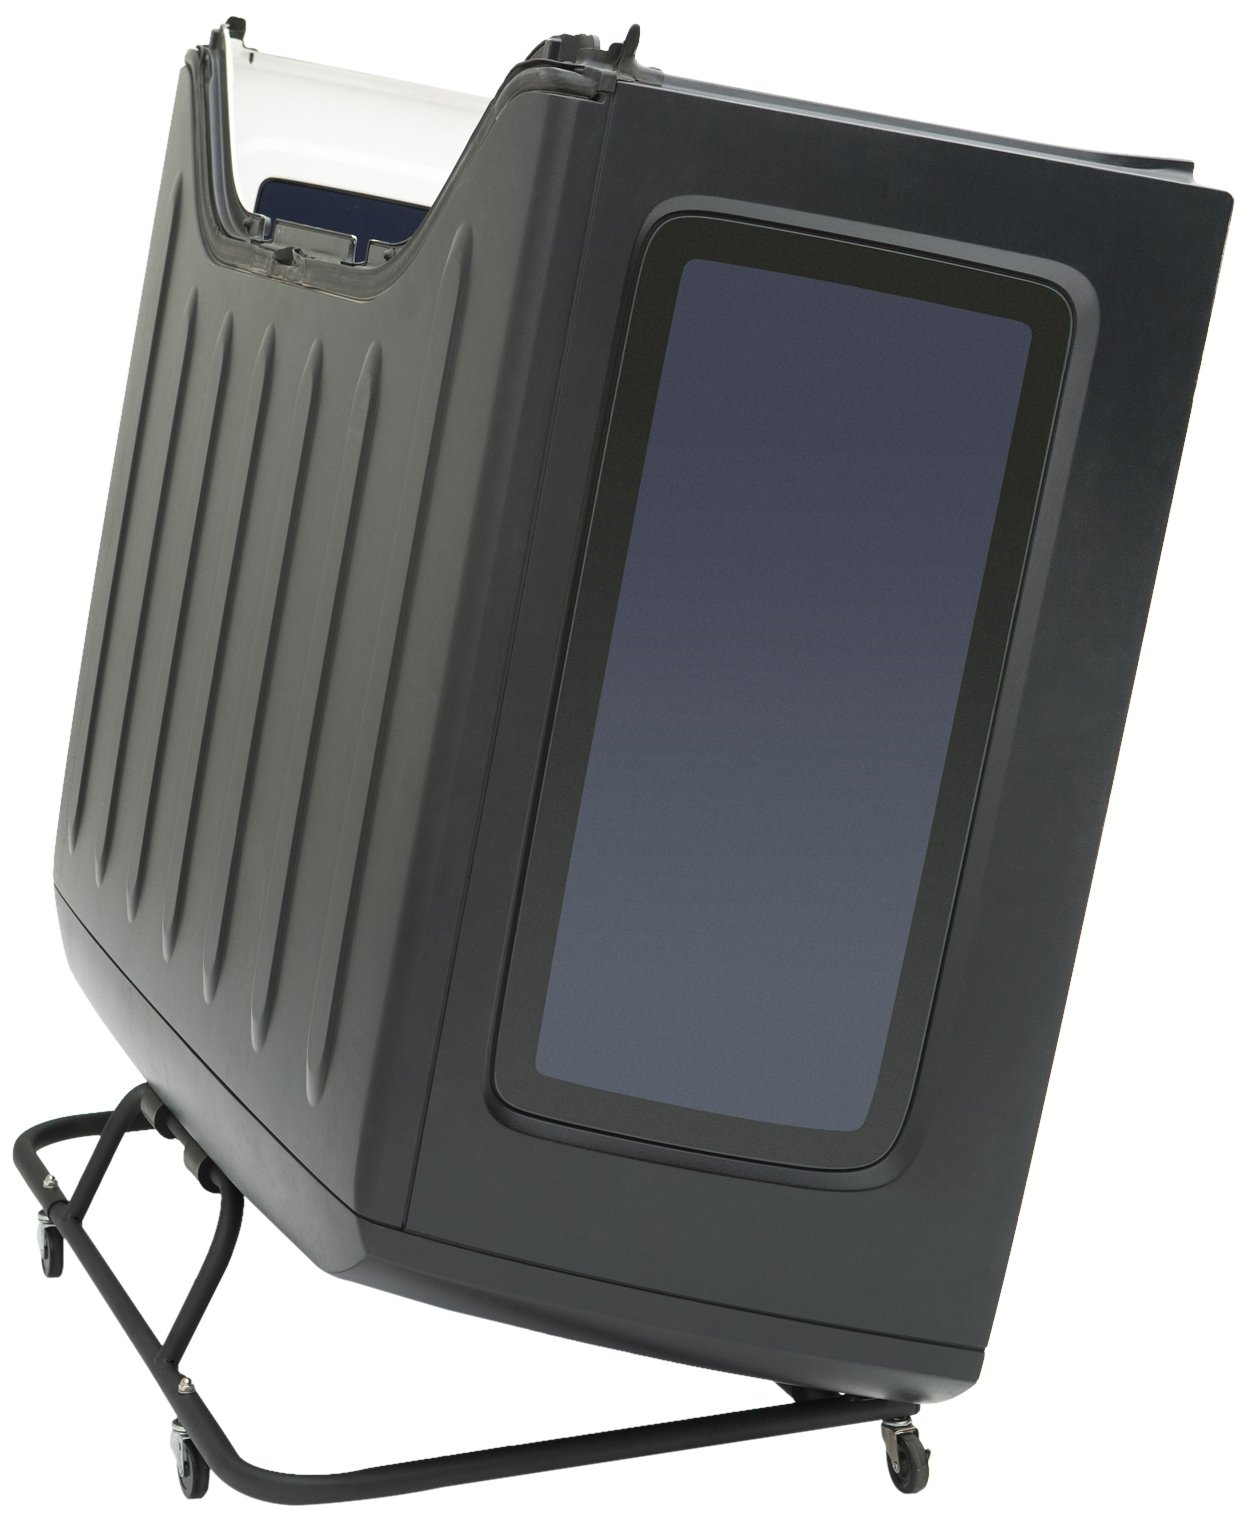 Surco HT200 Hard Top Carrier